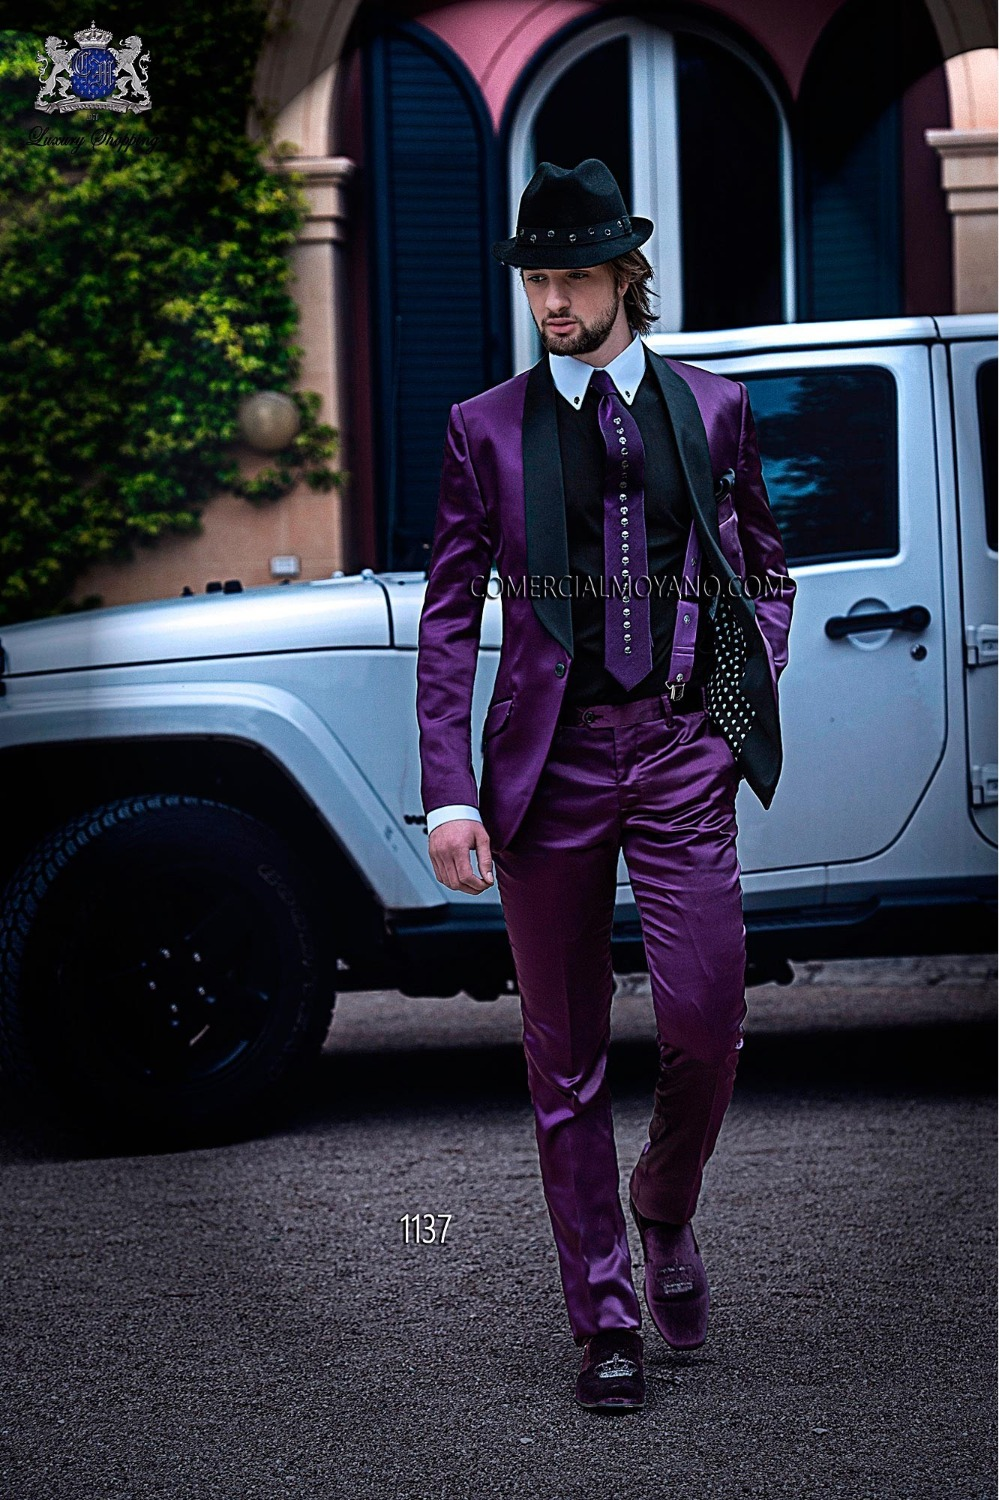 Popular Purple Prom Tuxedo-Buy Cheap Purple Prom Tuxedo lots from